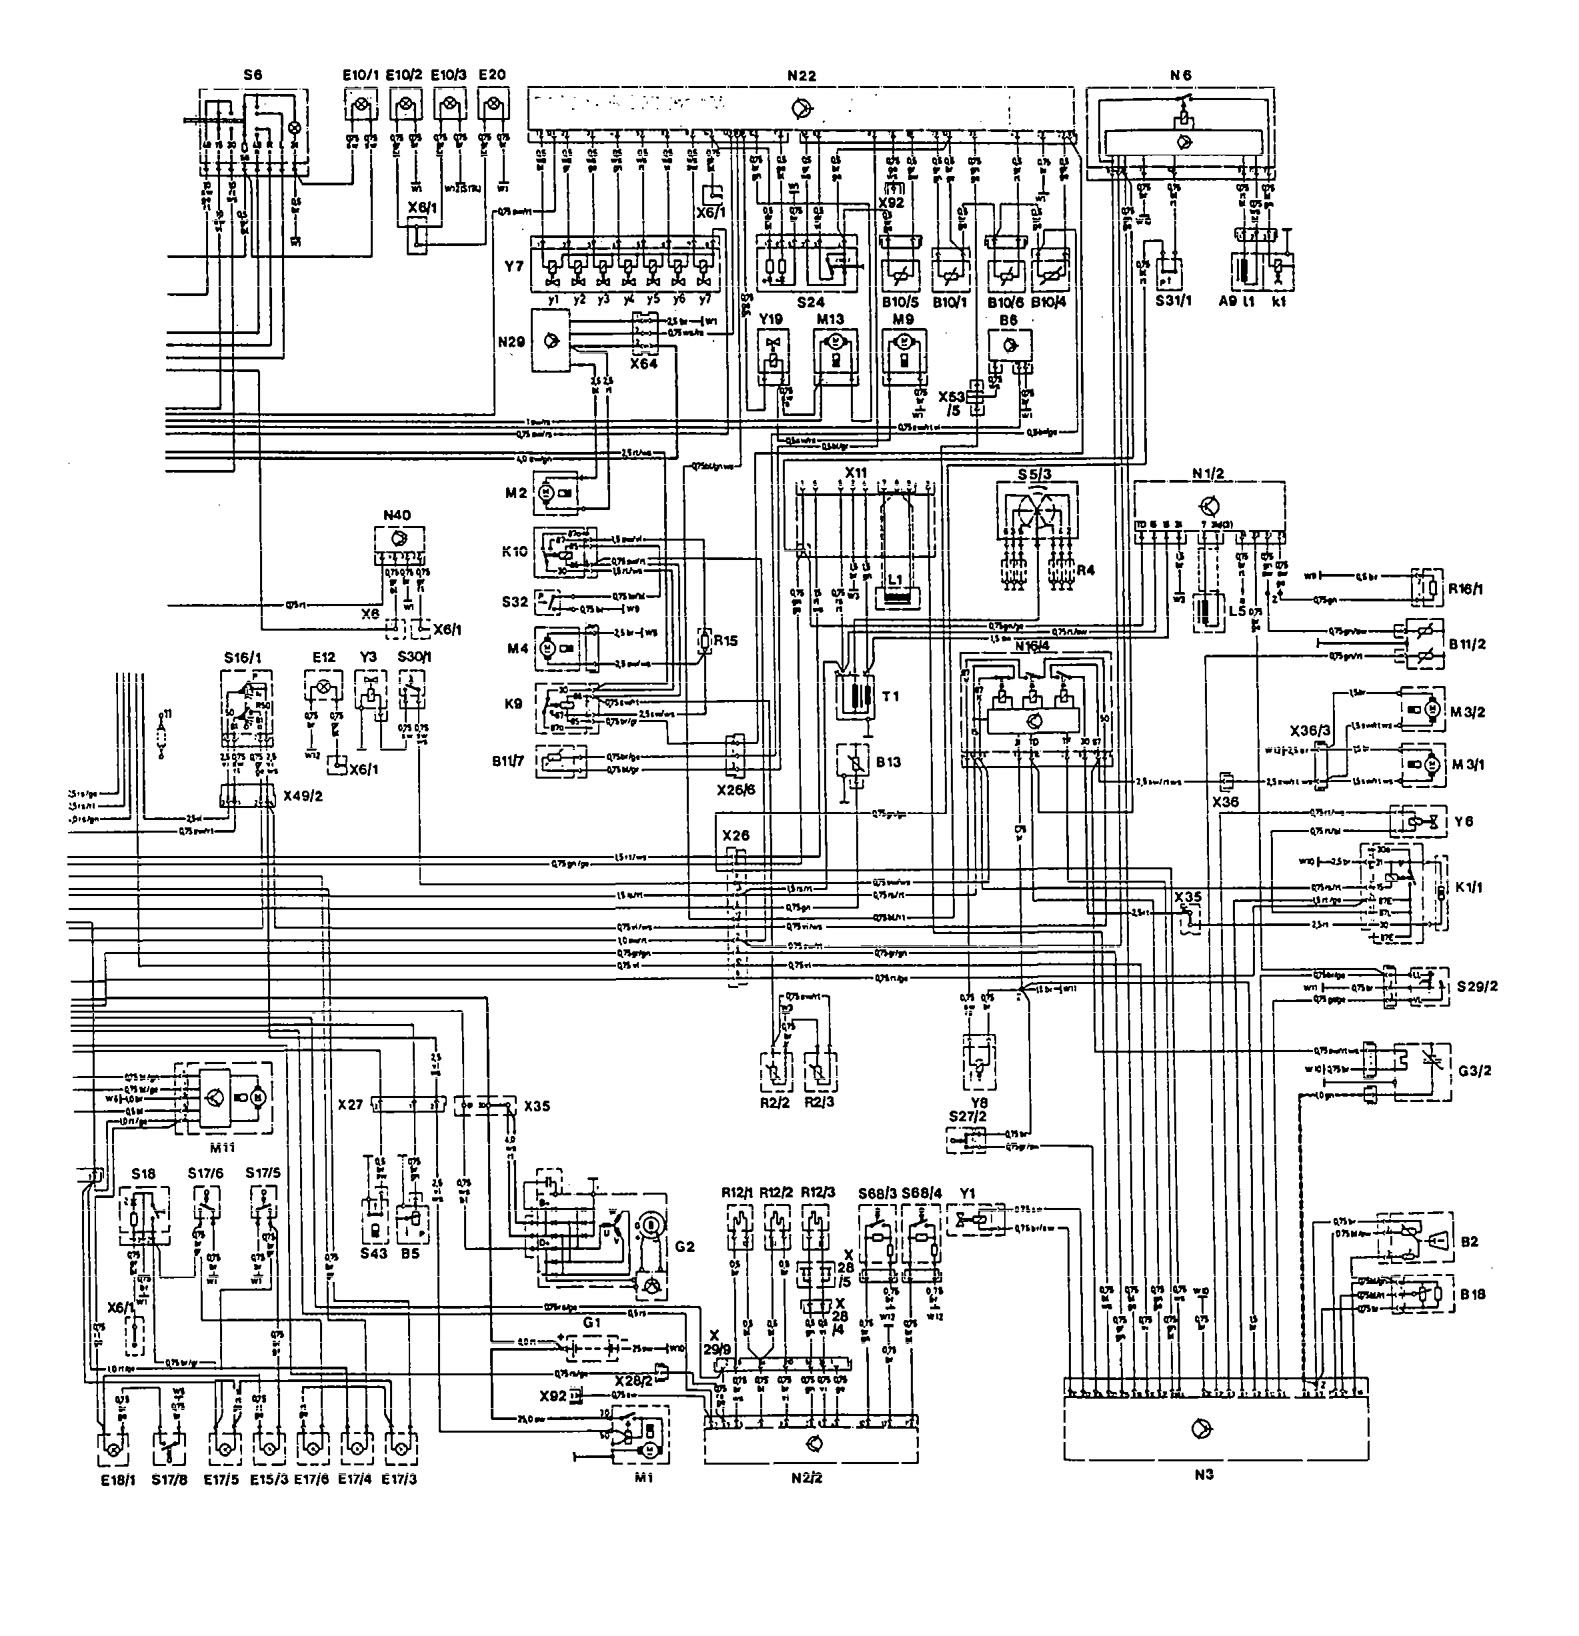 mercedes benz wiring diagrams mercedes benz 400e  1992 1993  wiring diagrams starting mercedes benz w205 wiring diagrams mercedes benz 400e  1992 1993